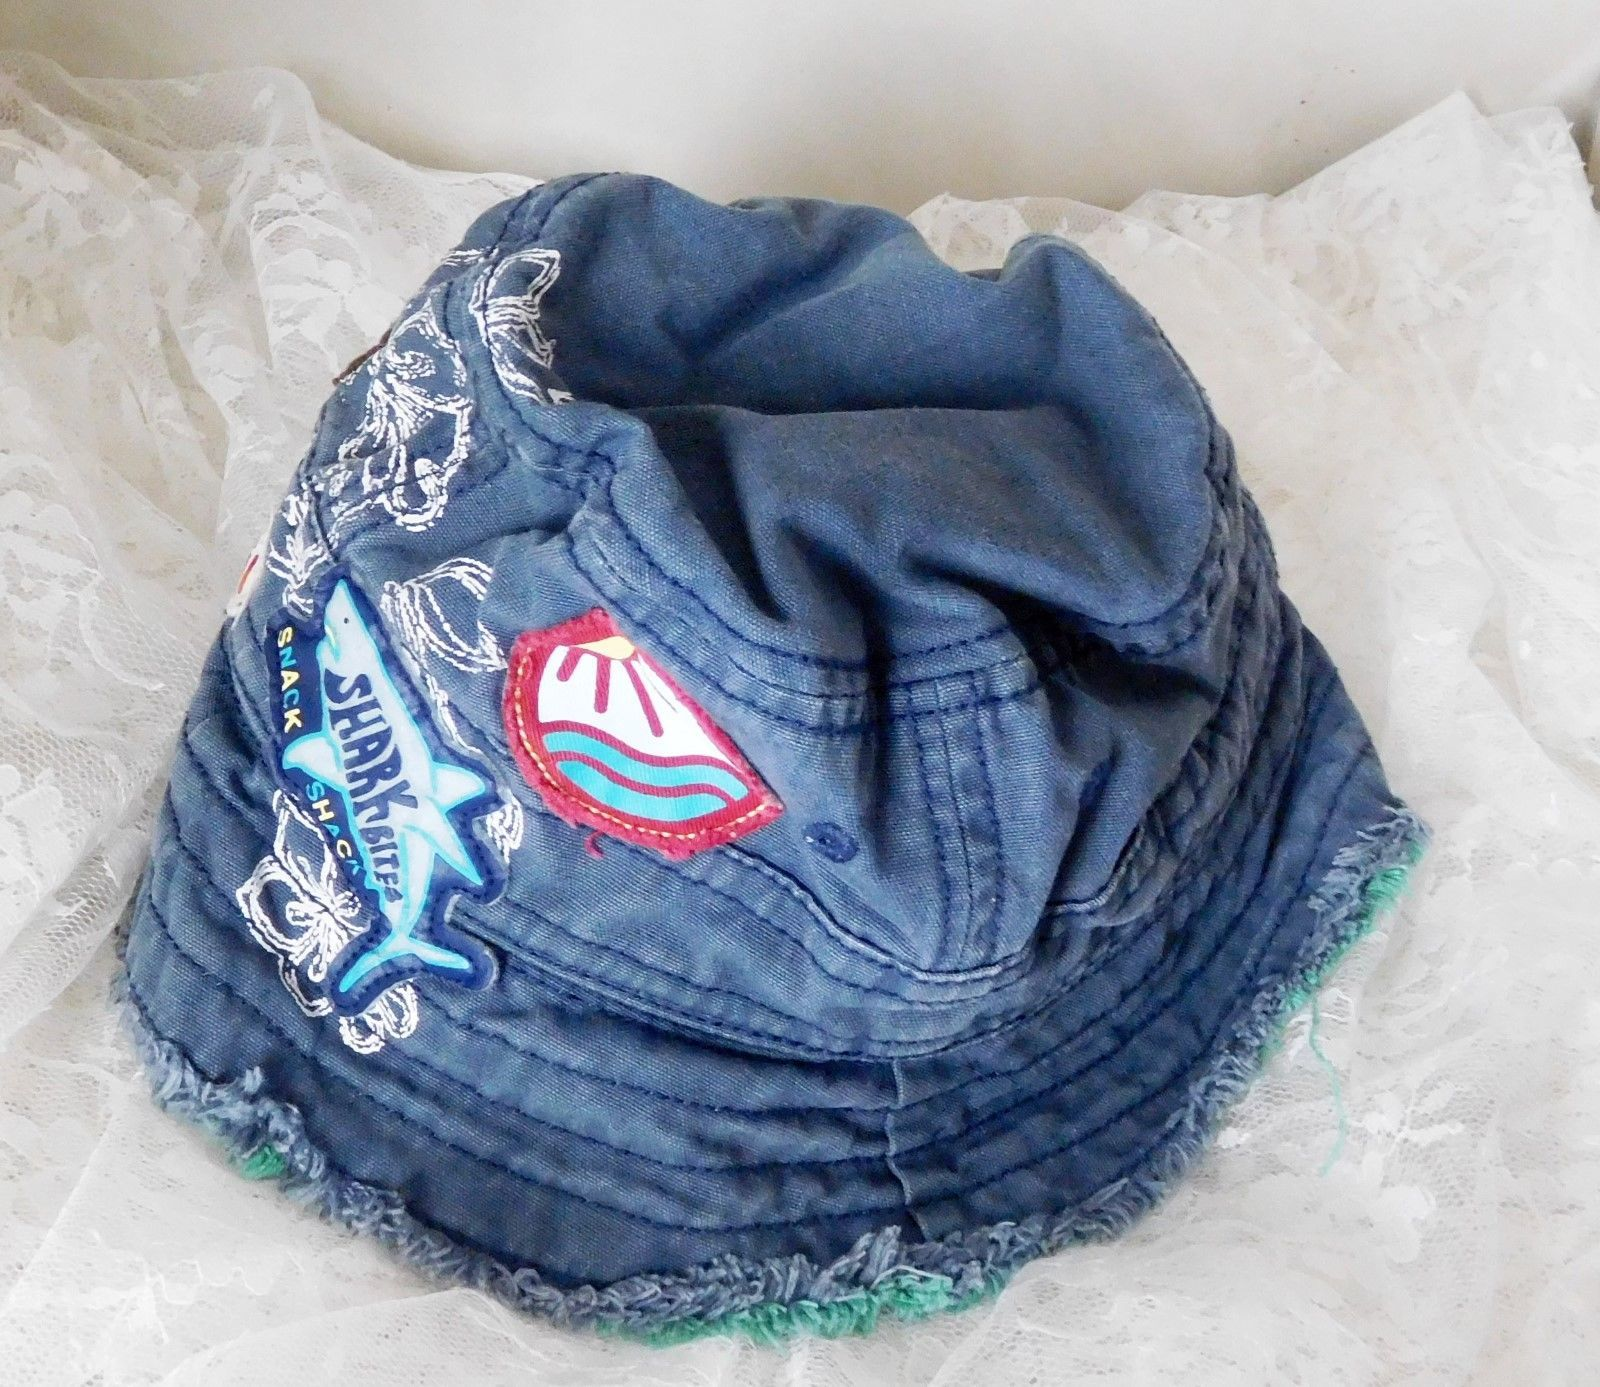 81bf6e93ecf GAP Reversible Bucket Hat Size XS S 12-24 Months - Wave Hunter Surf